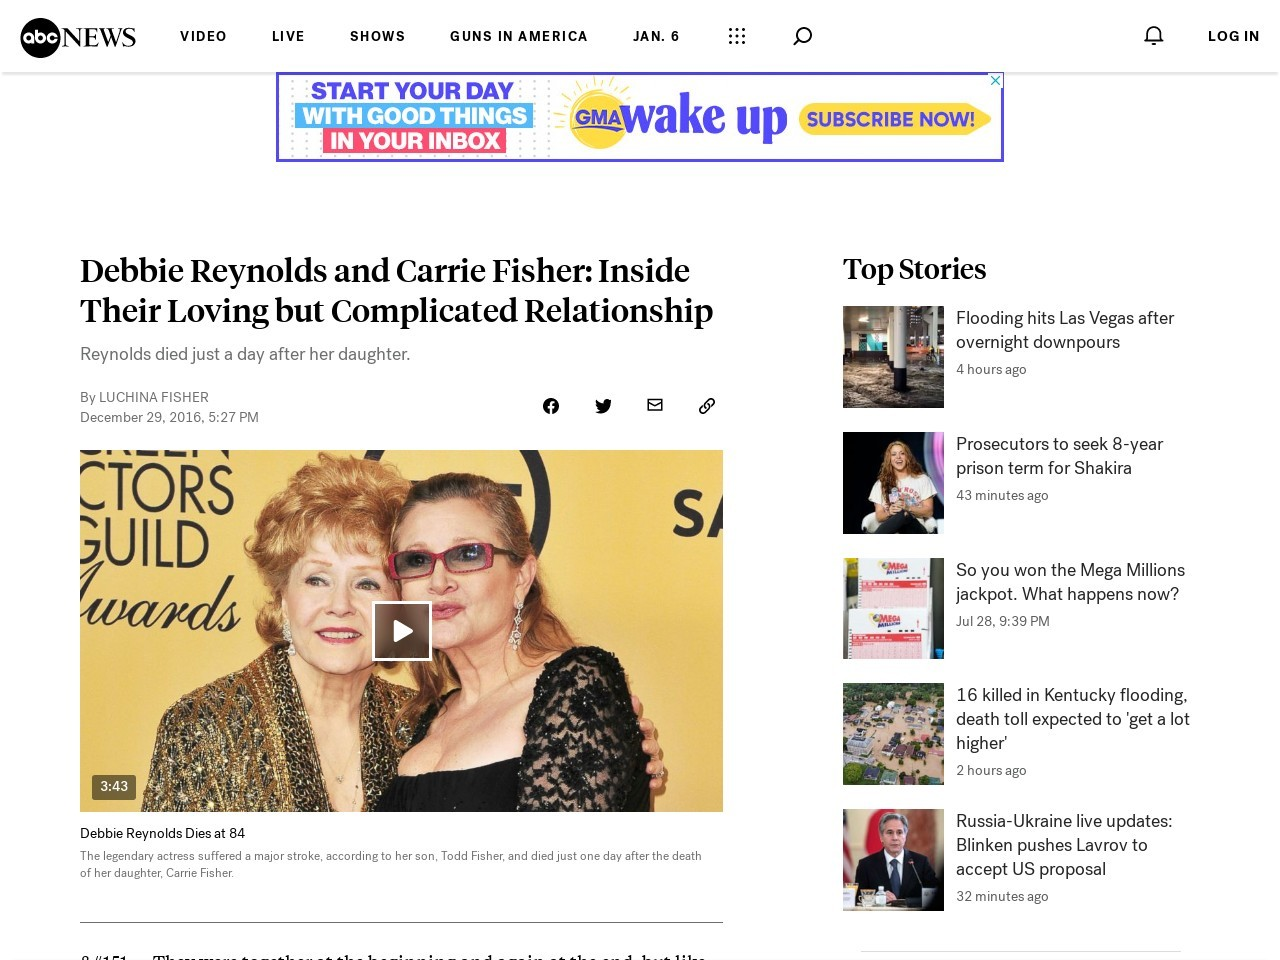 Debbie Reynolds and Carrie Fisher: Inside Their Loving but Complicated Relationship